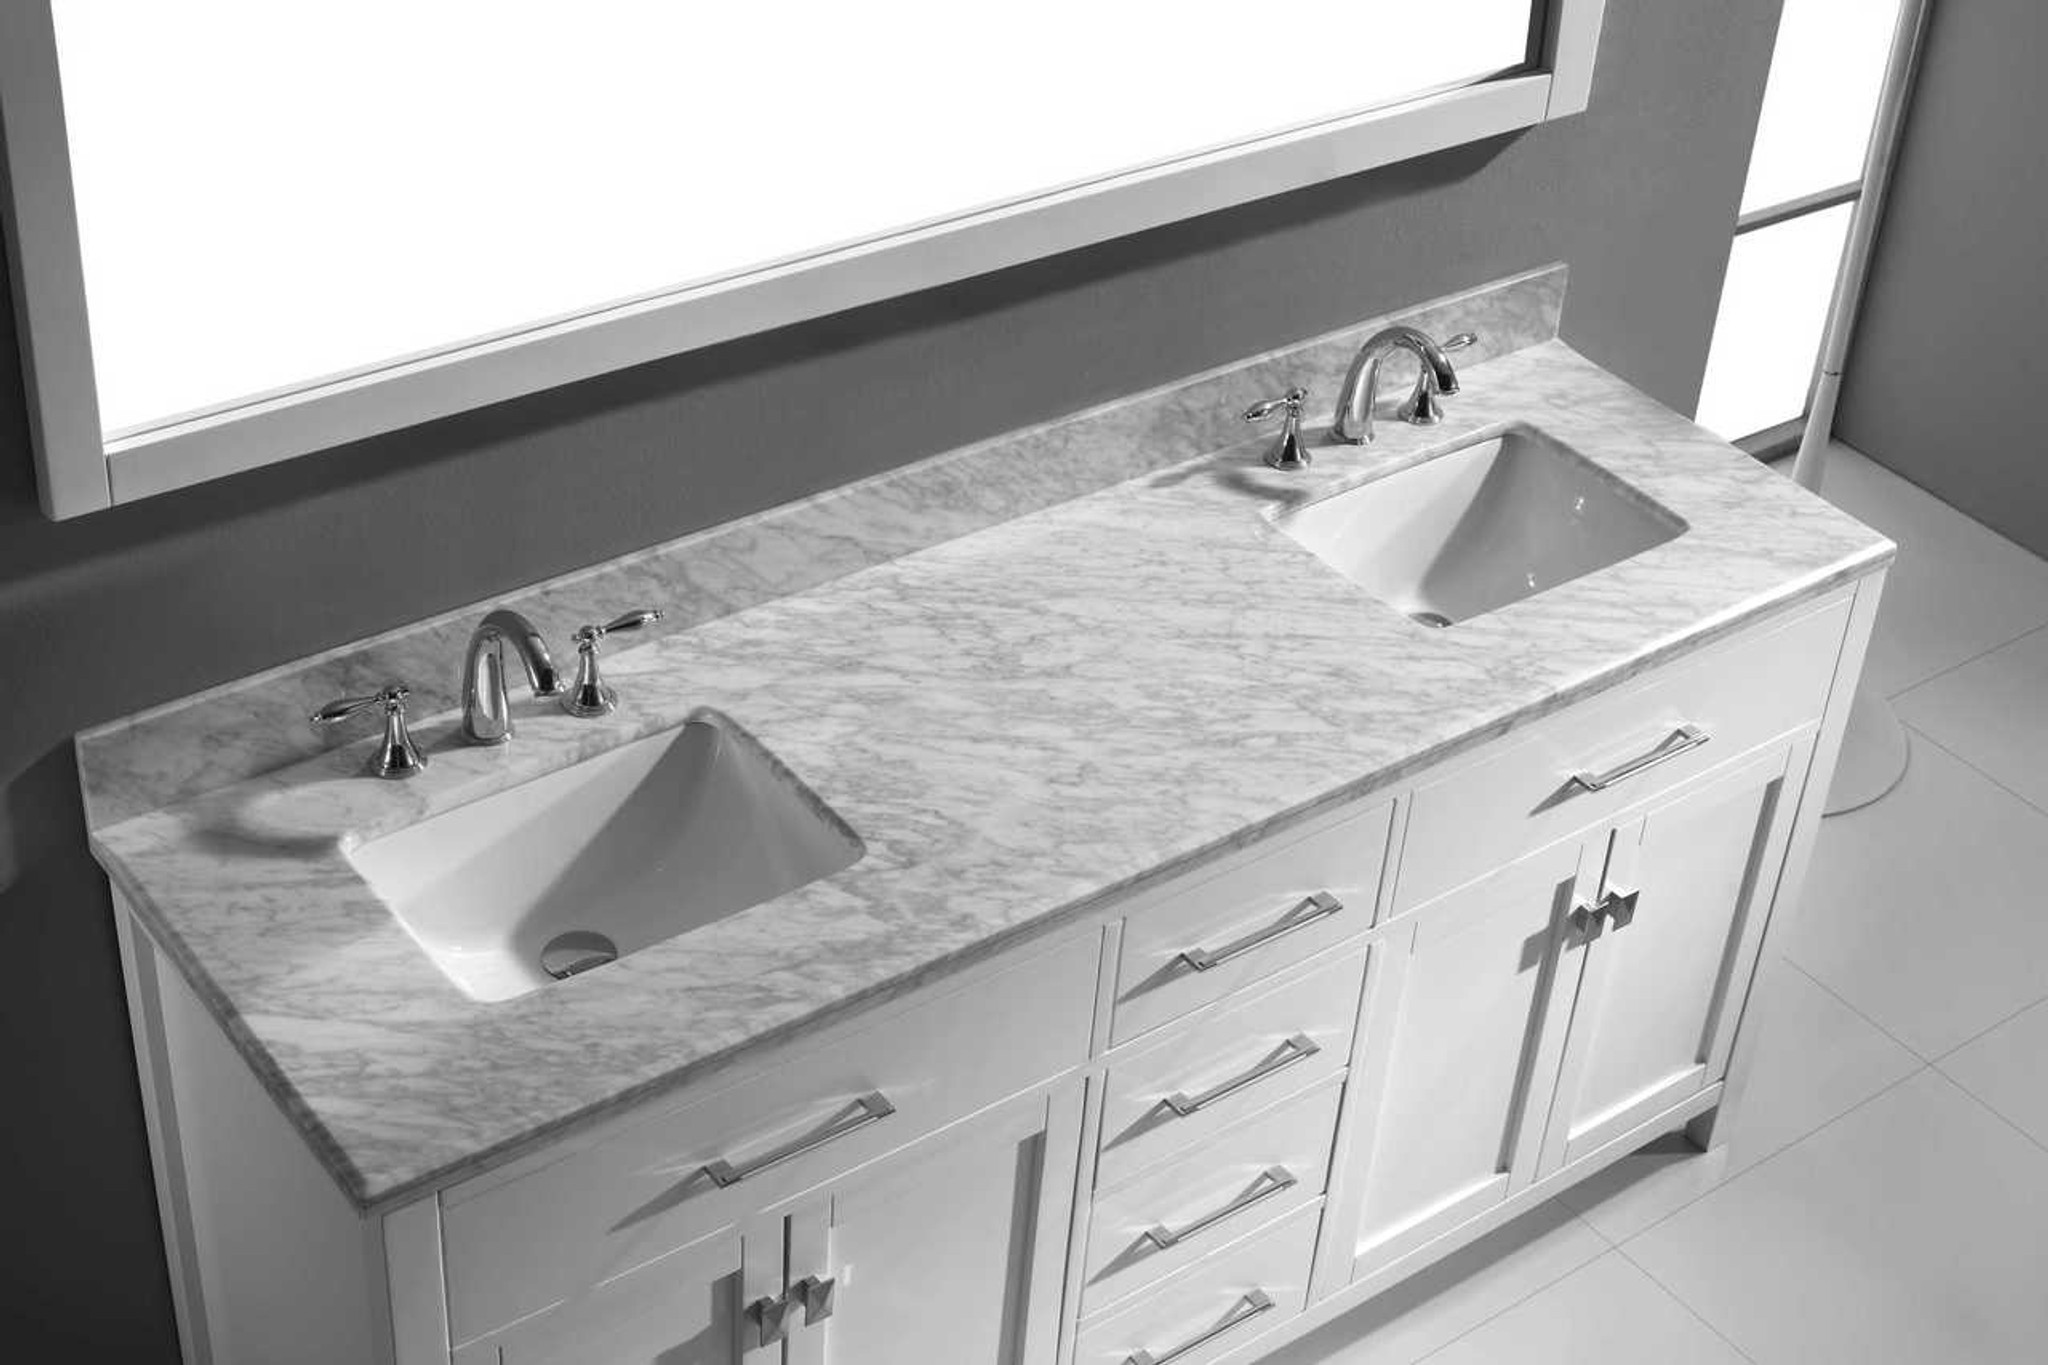 Awe Inspiring Virtu Usa Caroline 72 Double Bathroom Vanity Set In White W Italian Carrara White Marble Counter Top Square Basin Home Interior And Landscaping Ponolsignezvosmurscom